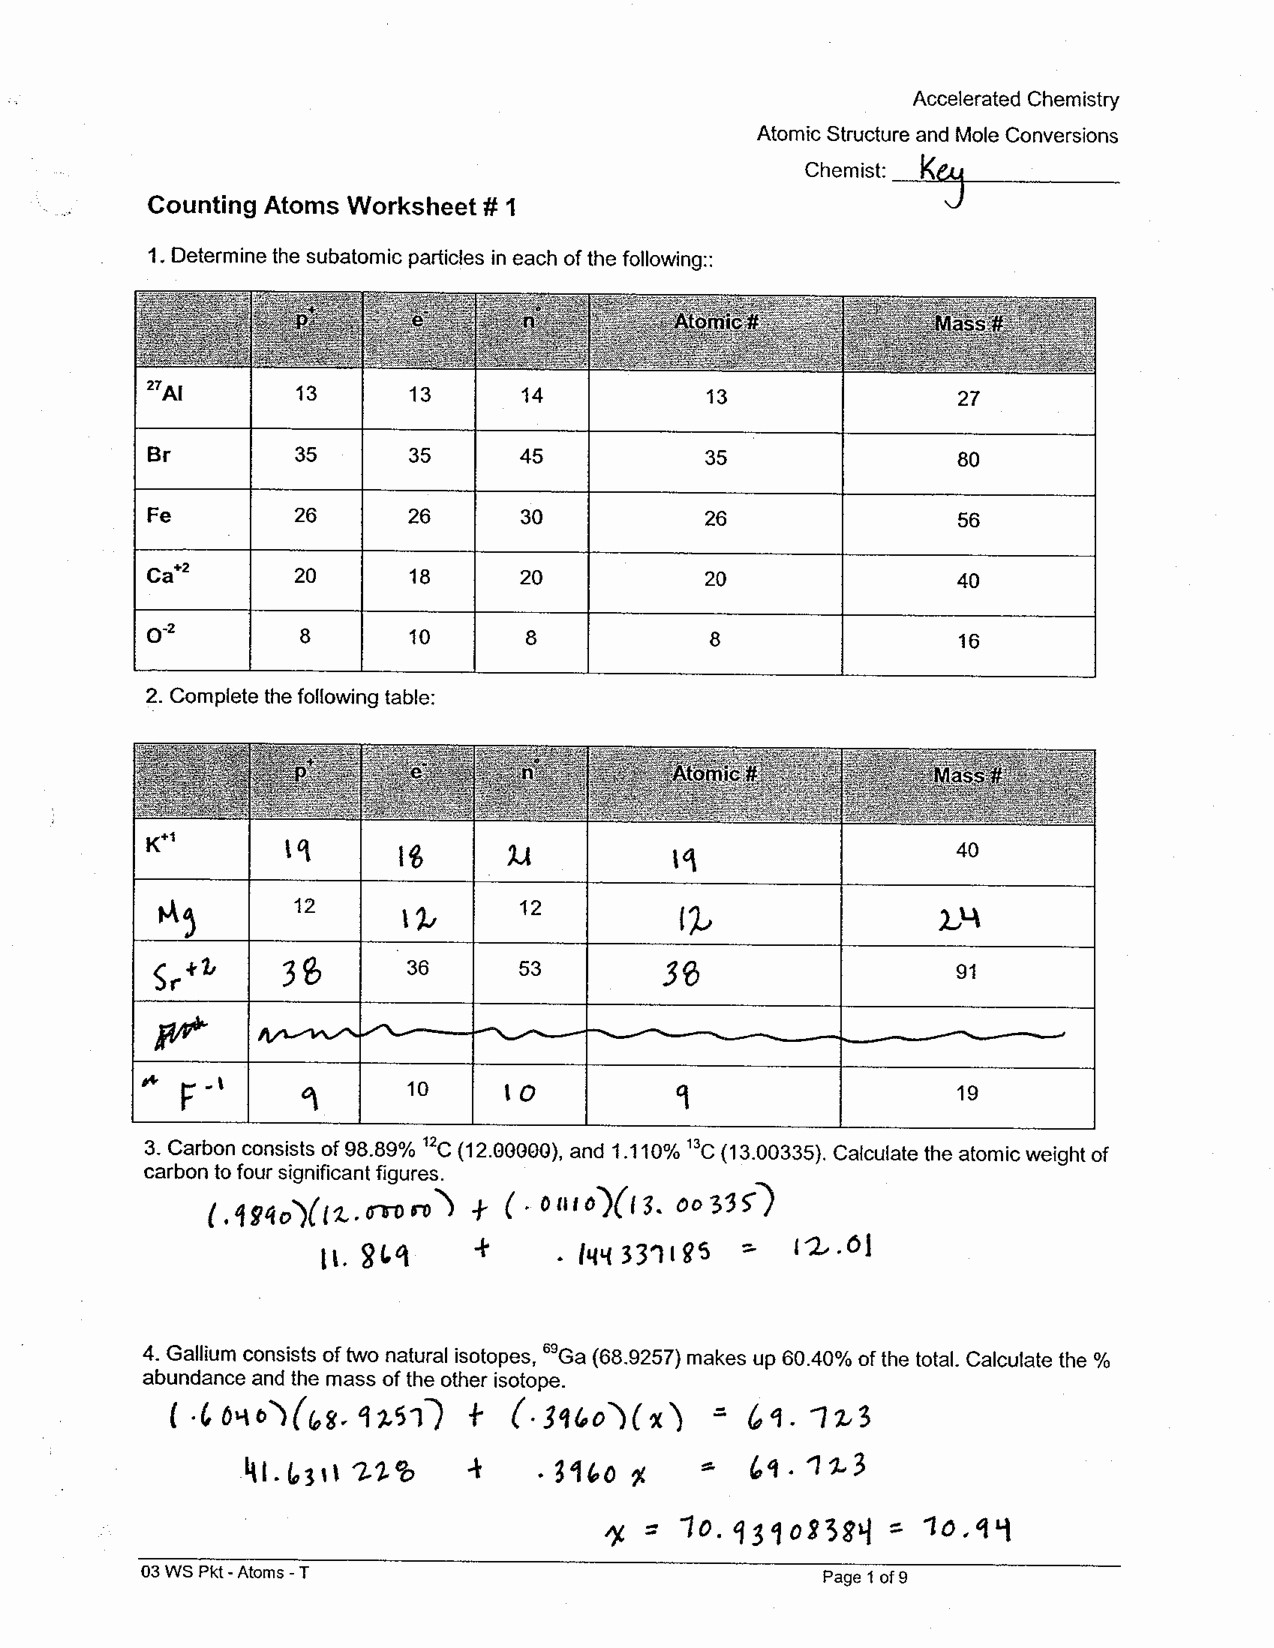 search query=atoms molecules and ions worksheet answers&channel=image&locale=en gb&sregion=ie&from=web&biw=412&bih=732&ps=50&pn=1&ss mode=moderate&sid=b738dab30d7d6a9c2918c c &ss type=normal&rs=y